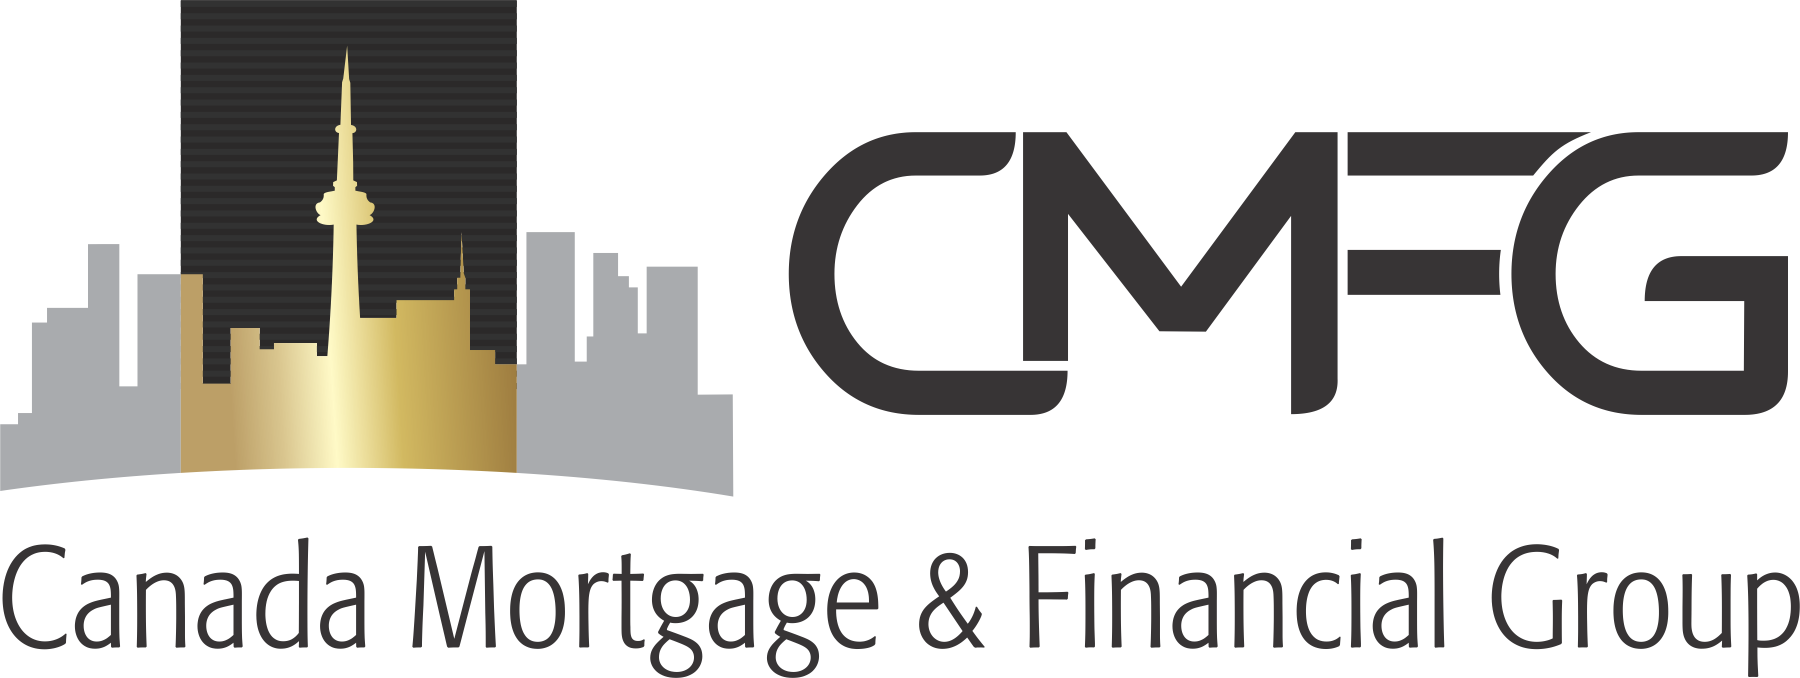 CMFG | Canada Mortgage and Financial Group